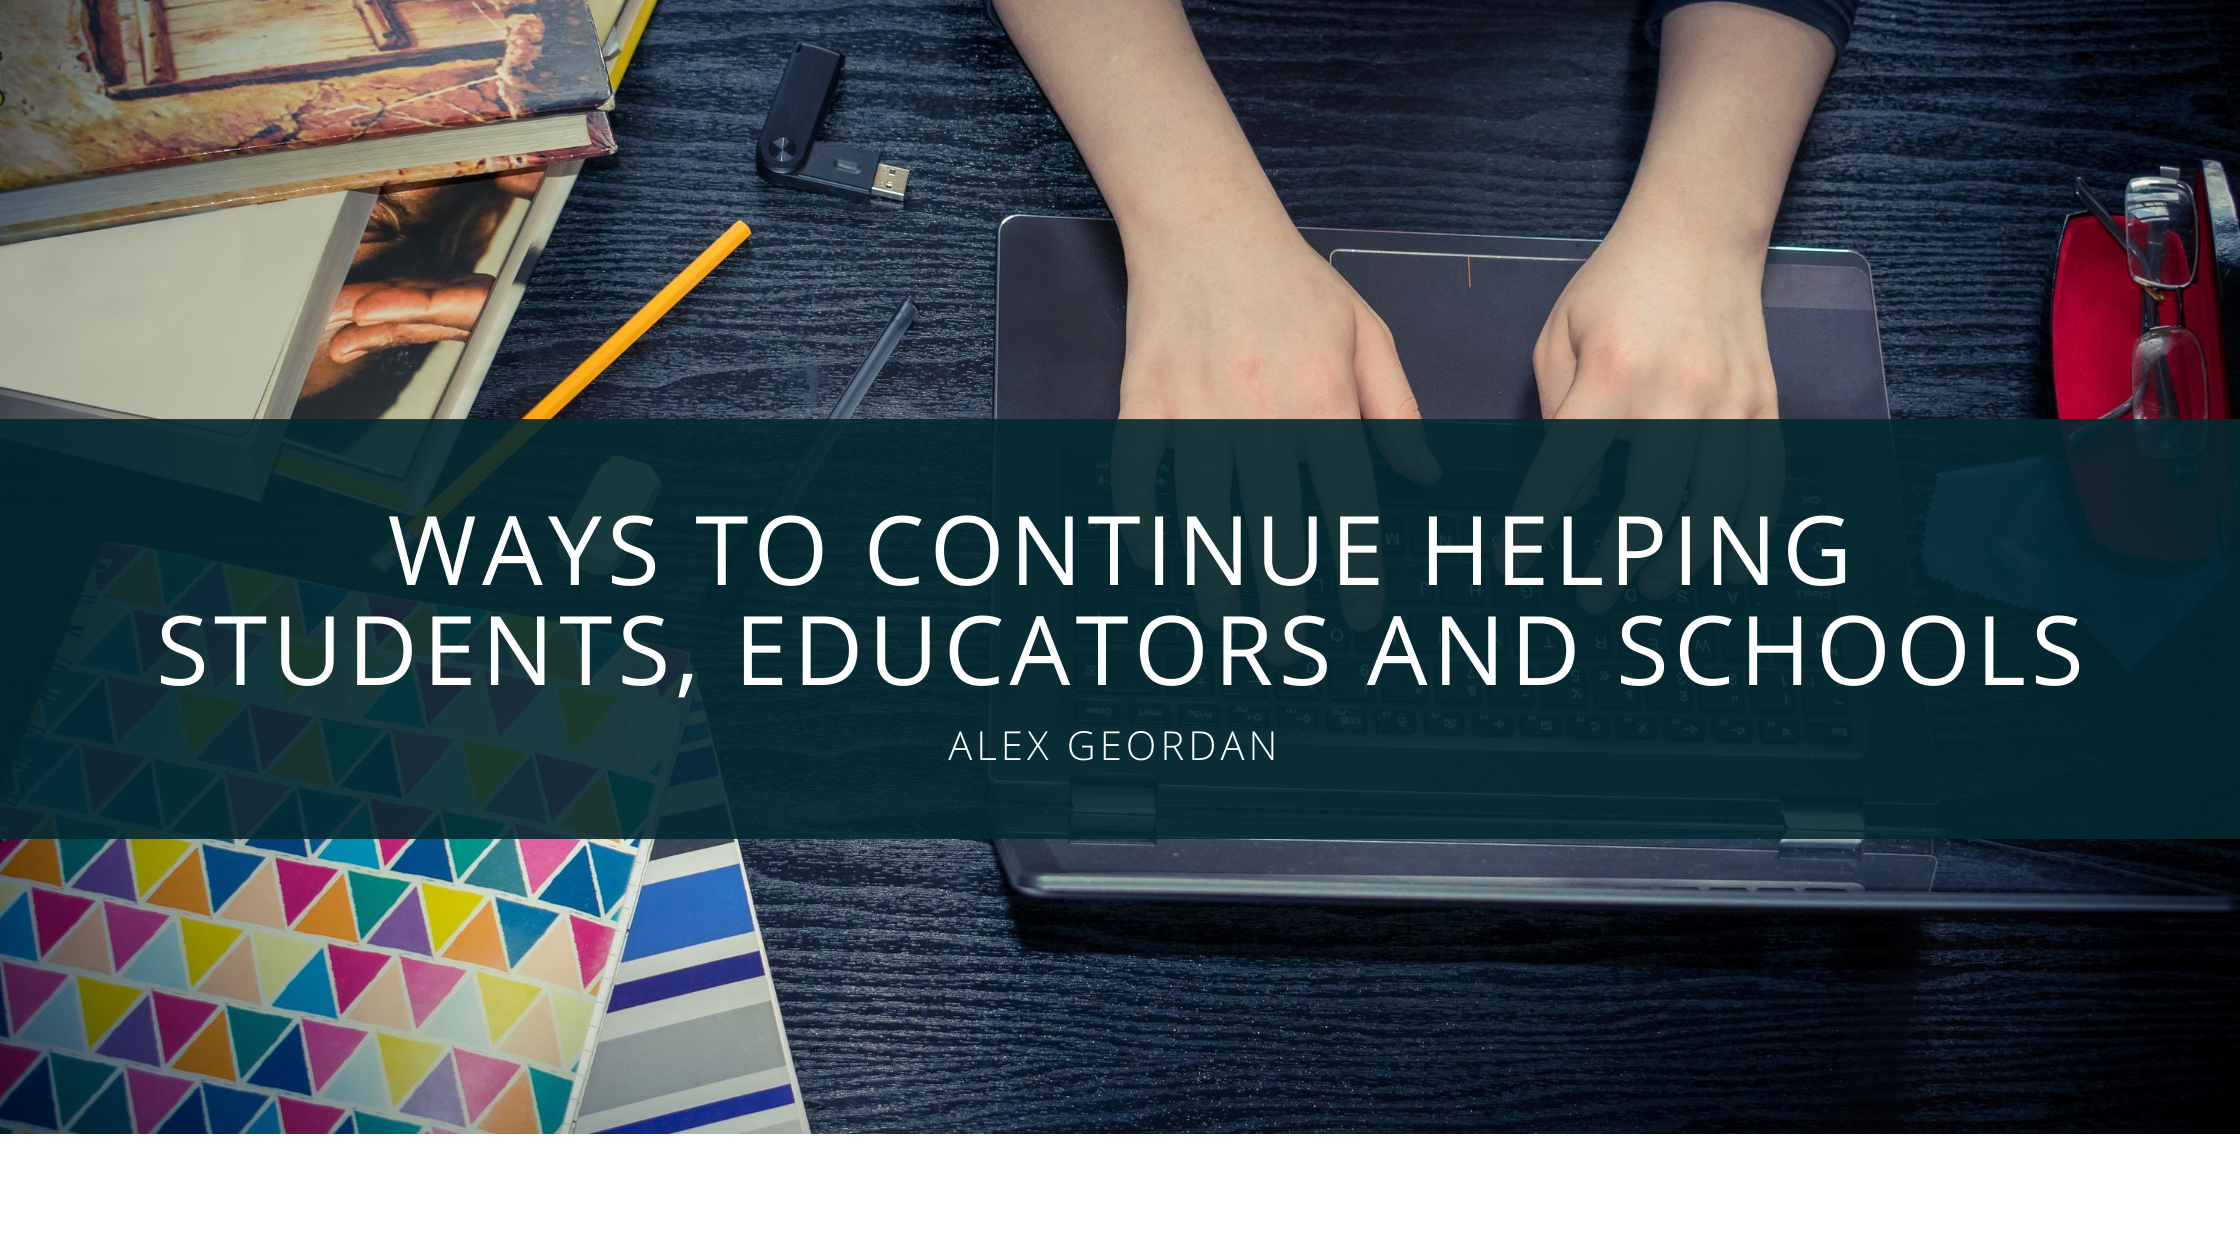 Alex Geordan Looks to Continue Helping Students Educators and Schools